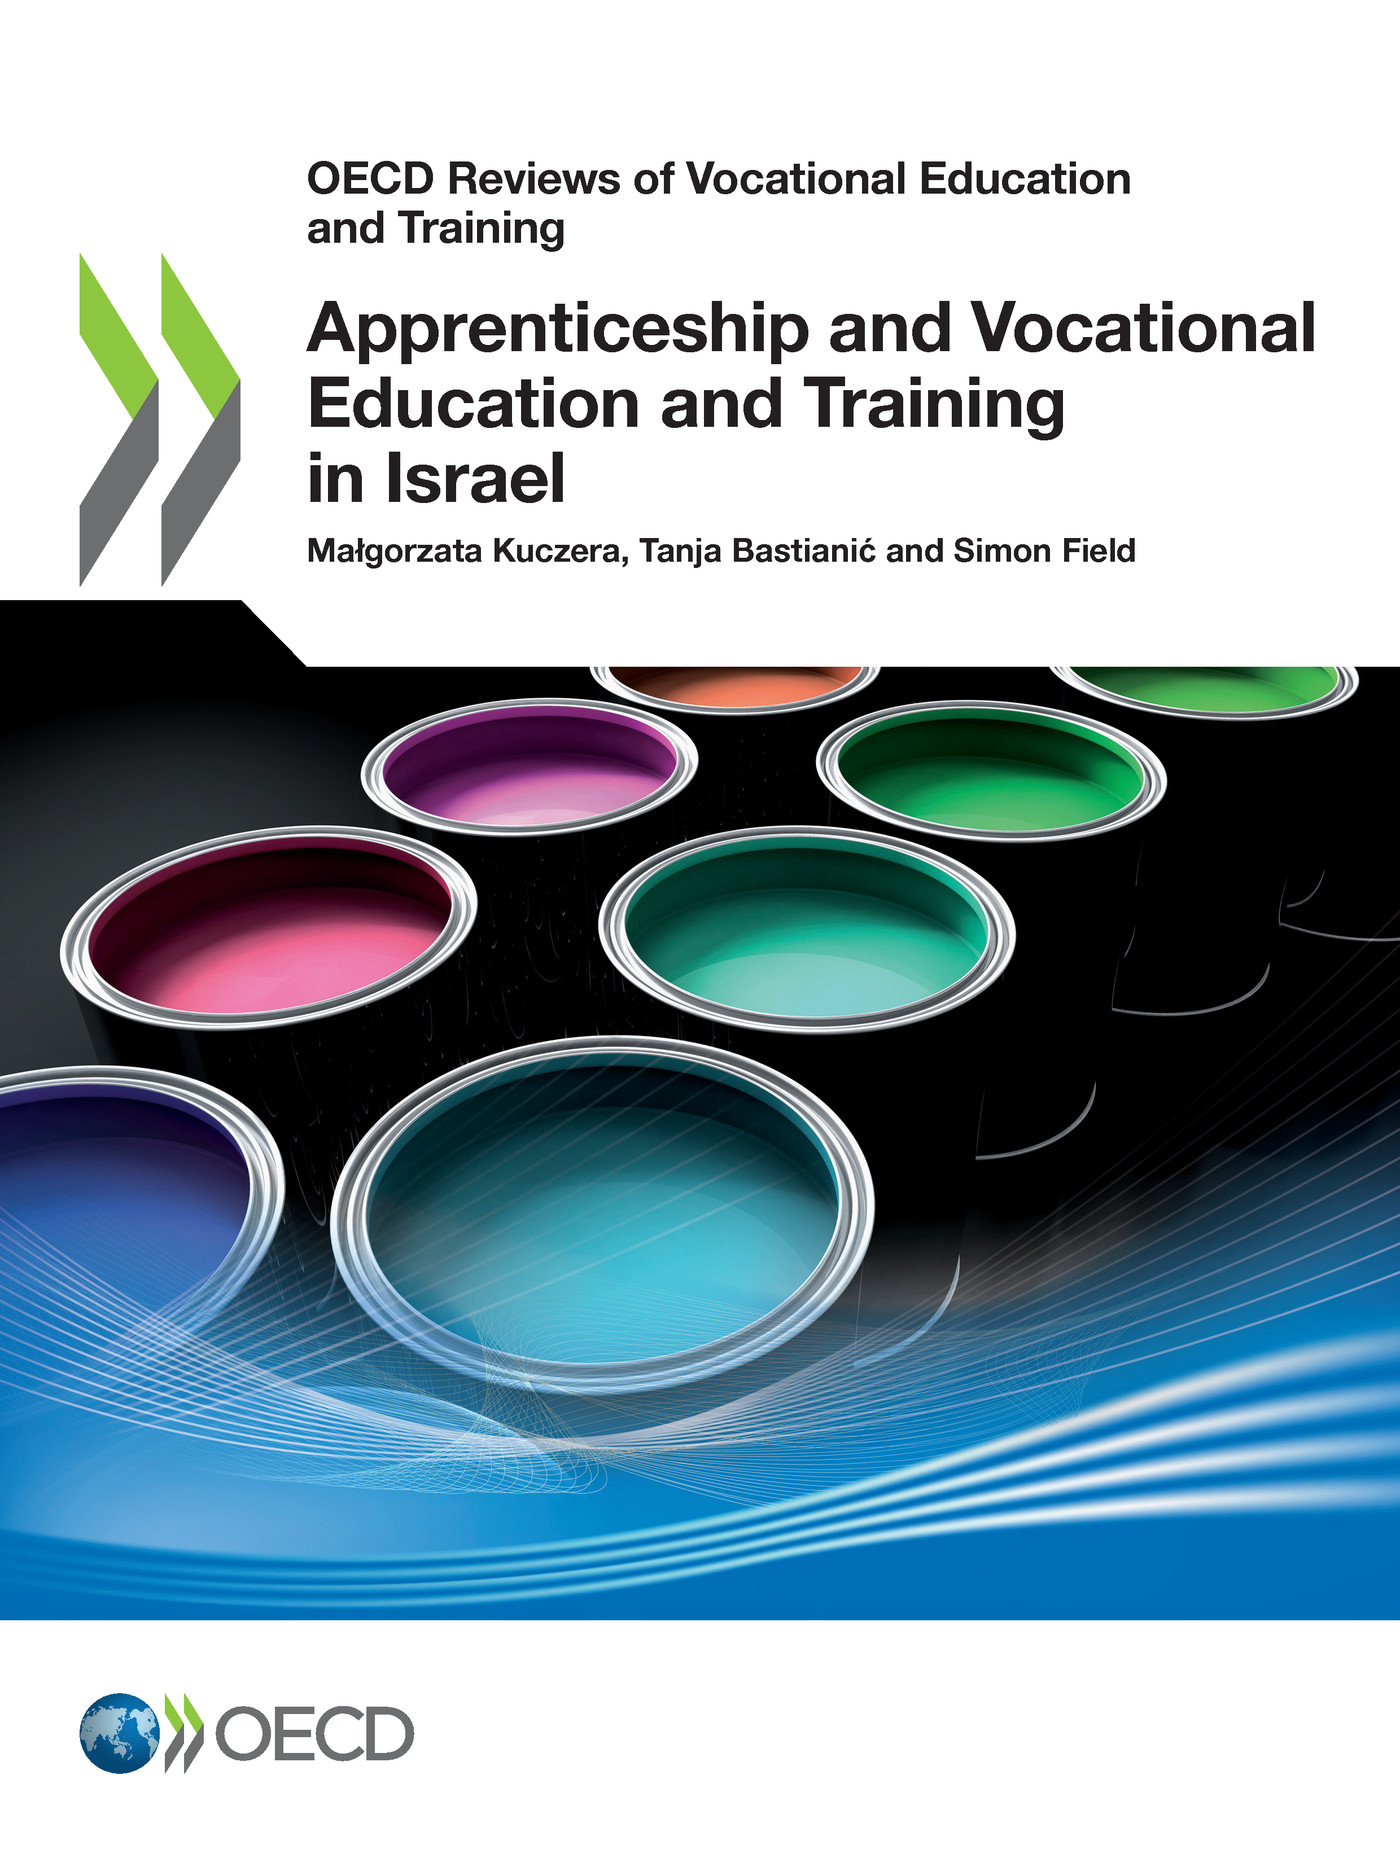 Apprenticeship and Vocational Education and Training in Israel De  Collectif - OCDE / OECD